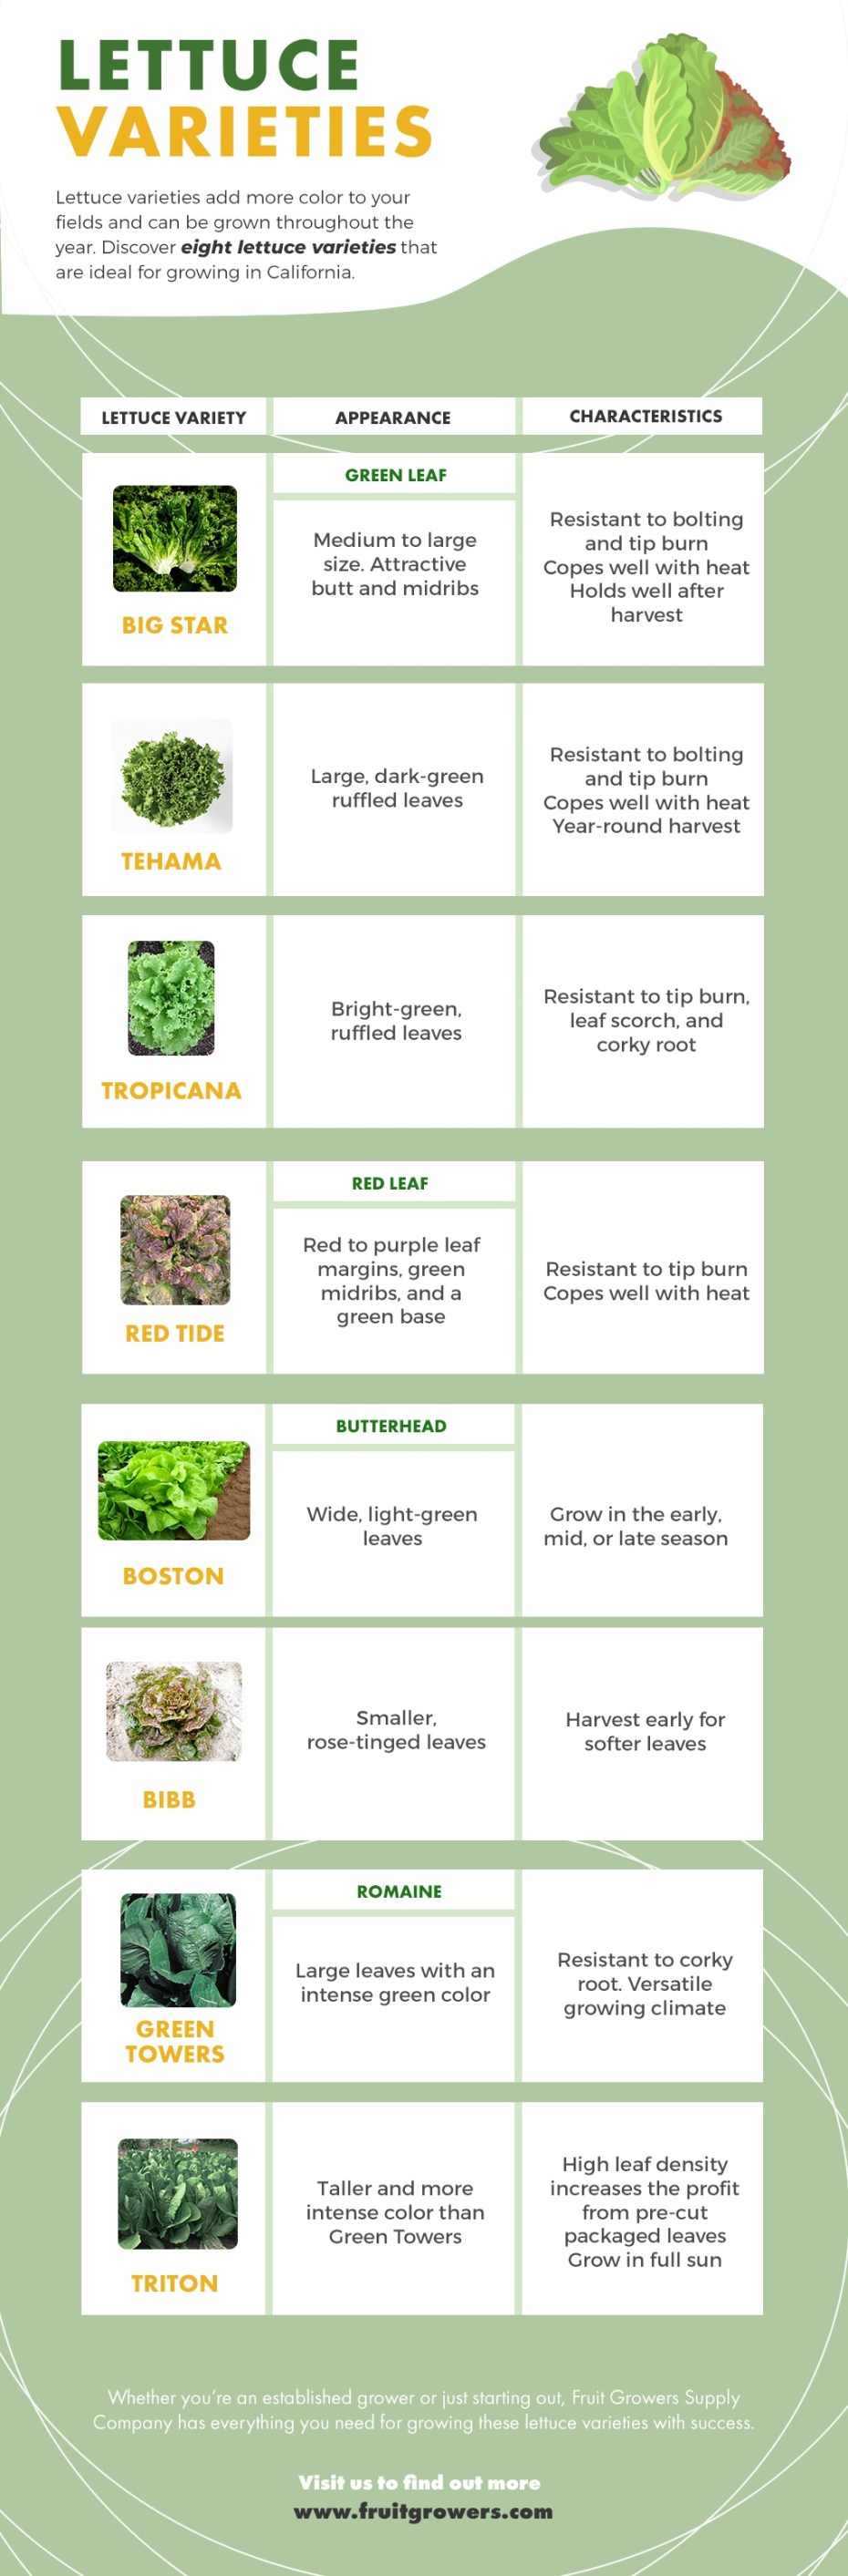 The FGS Guide to Lettuce Varieties